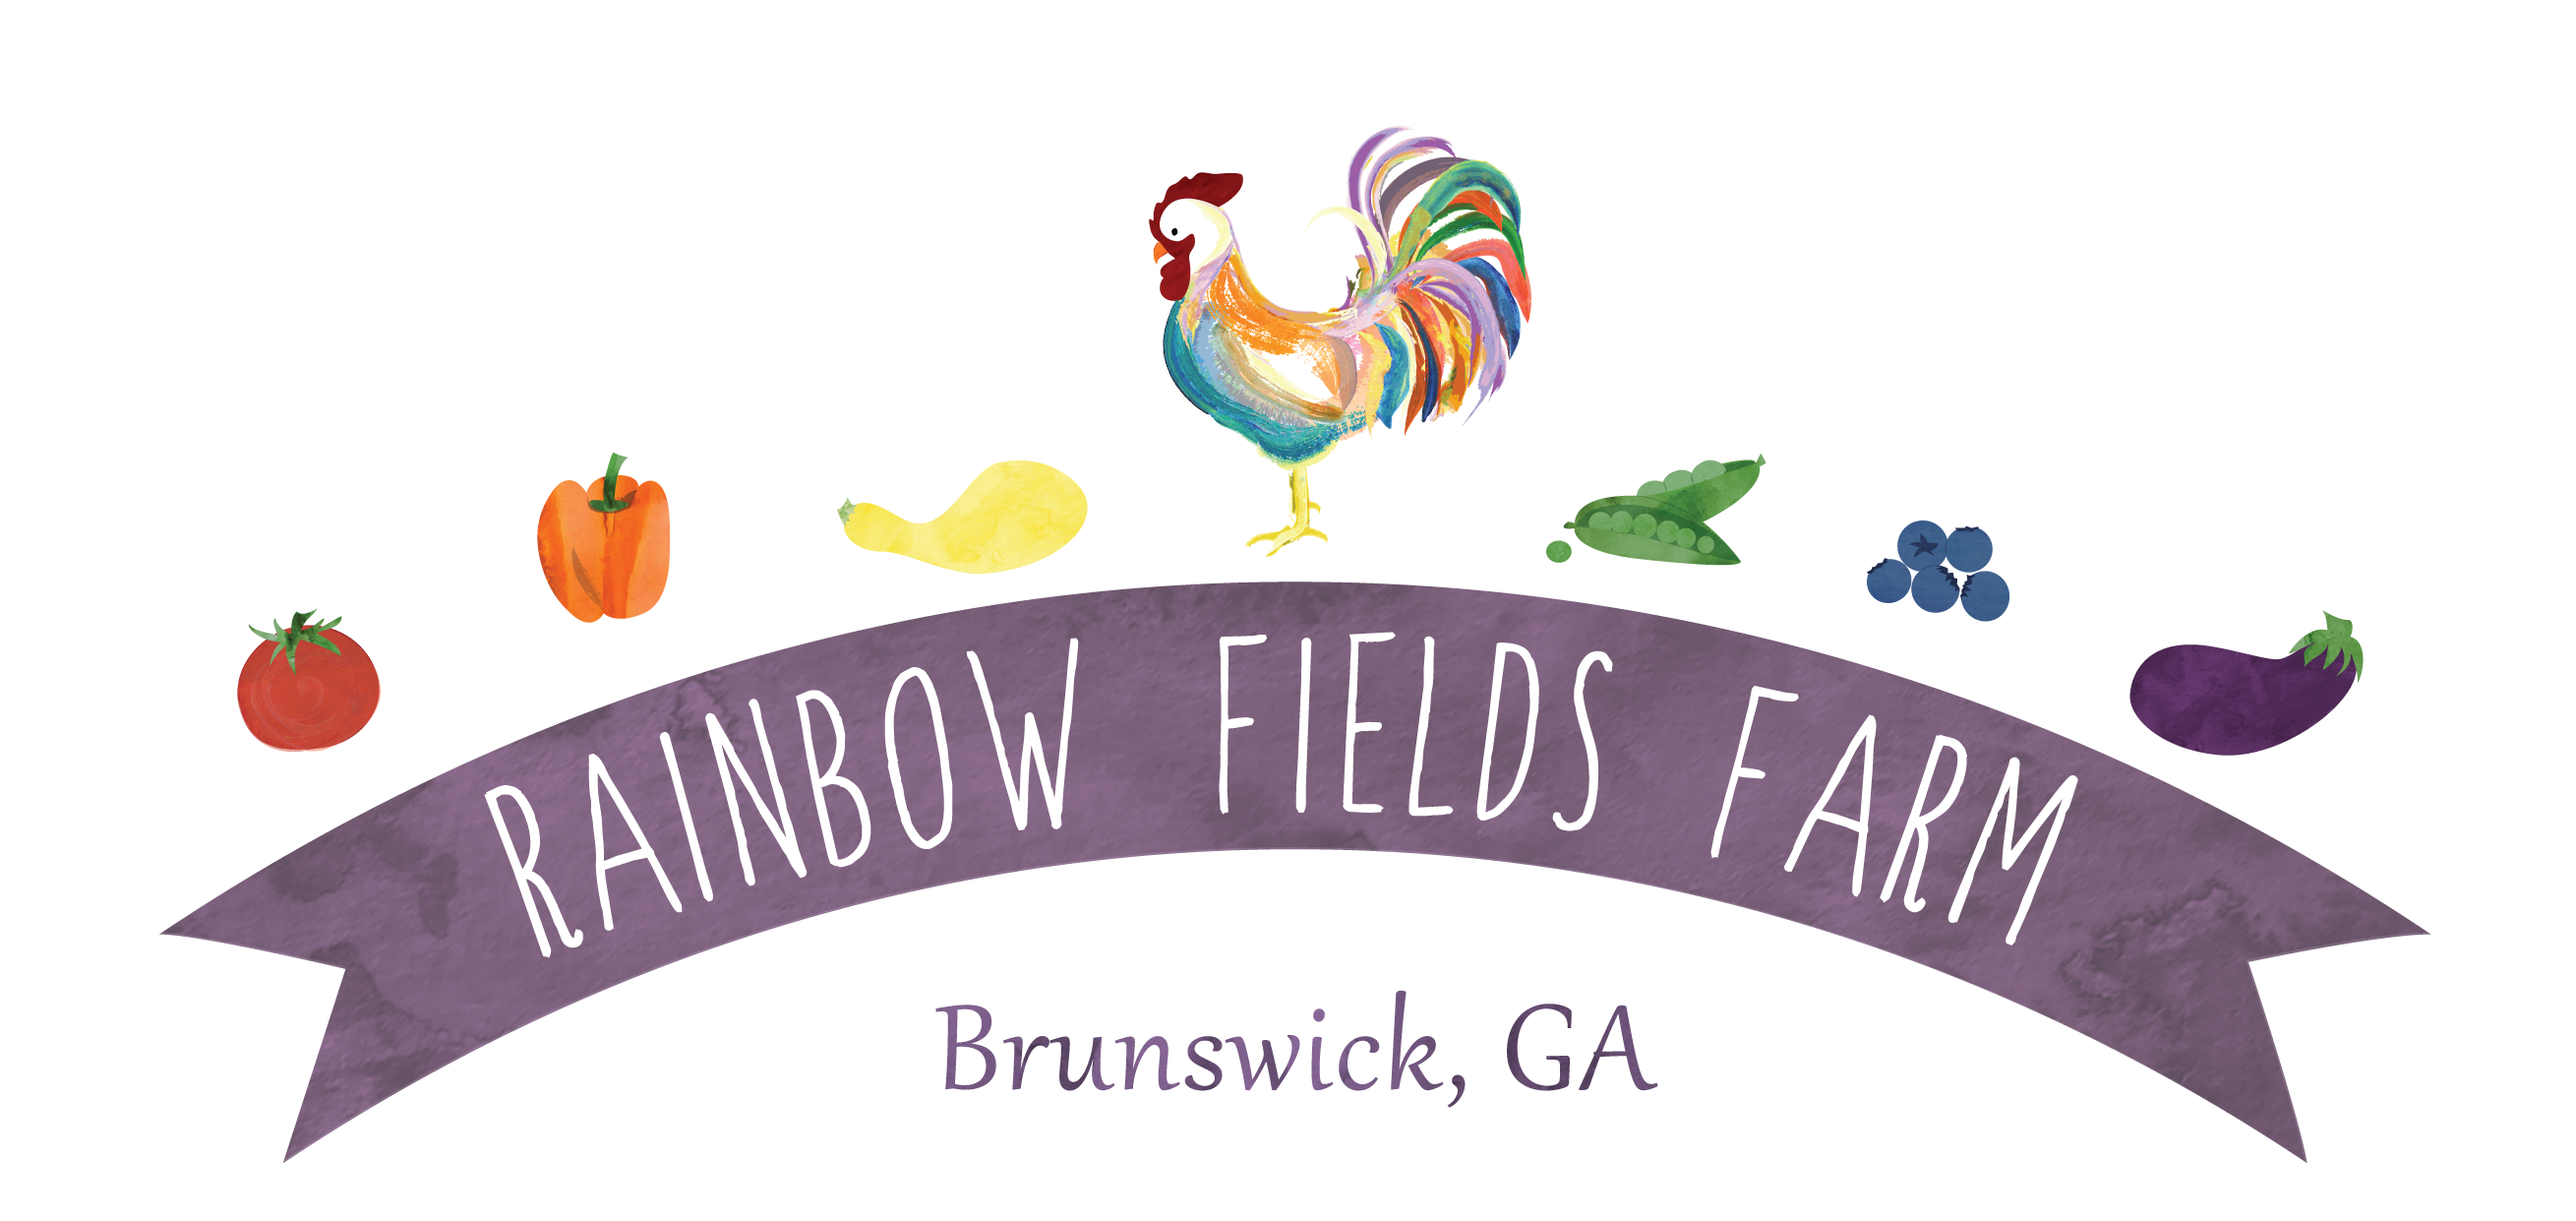 Rainbow Fields Farm logo